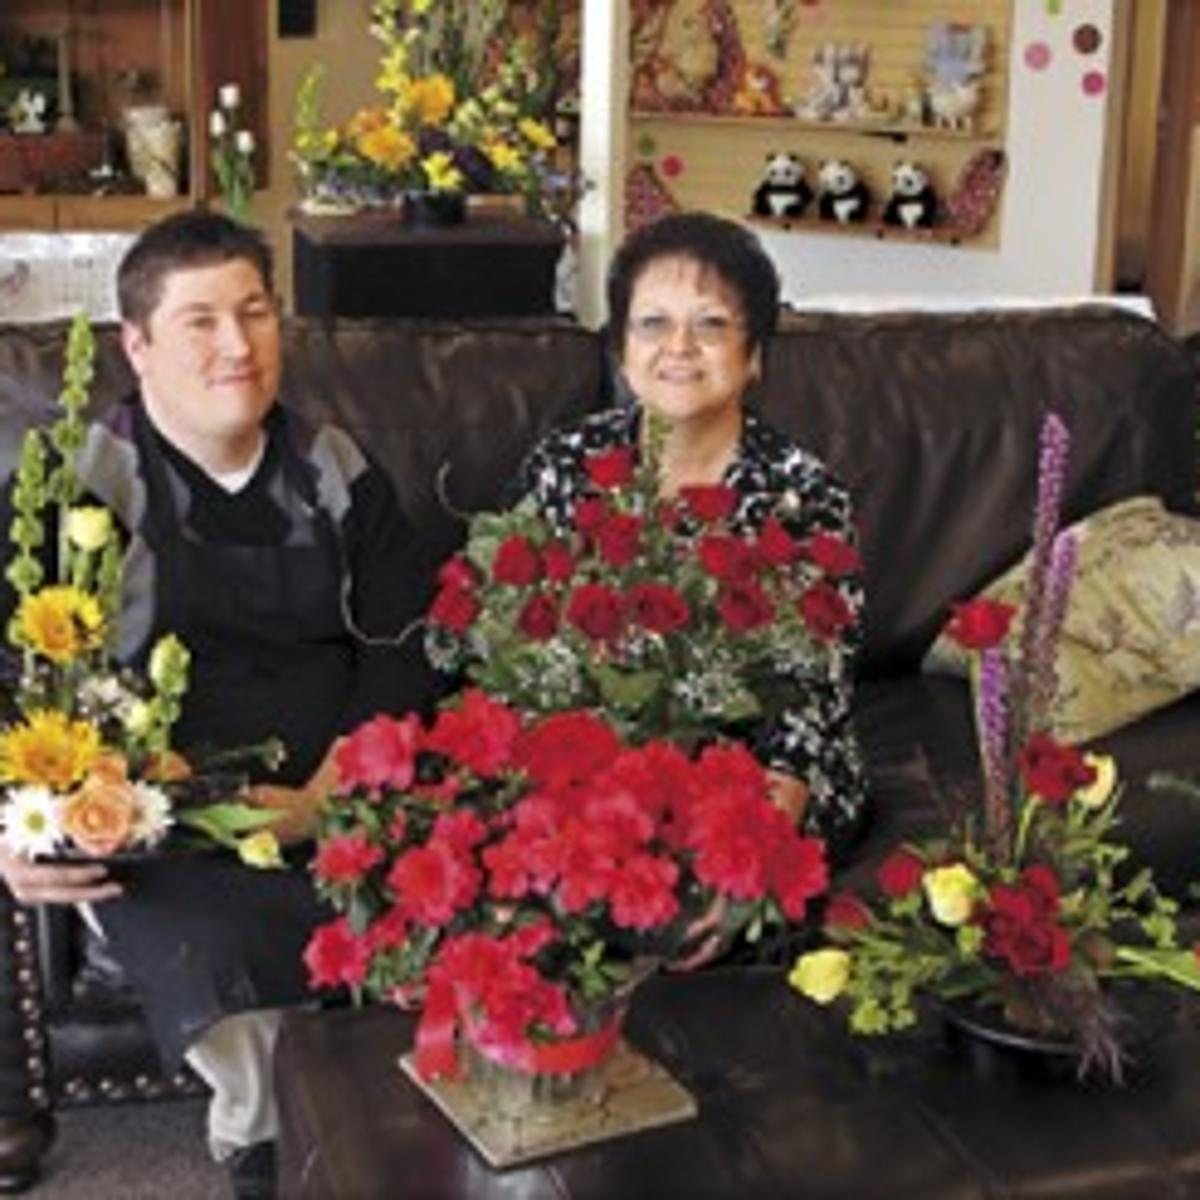 Talking Business: Floral designers branch out with own shop